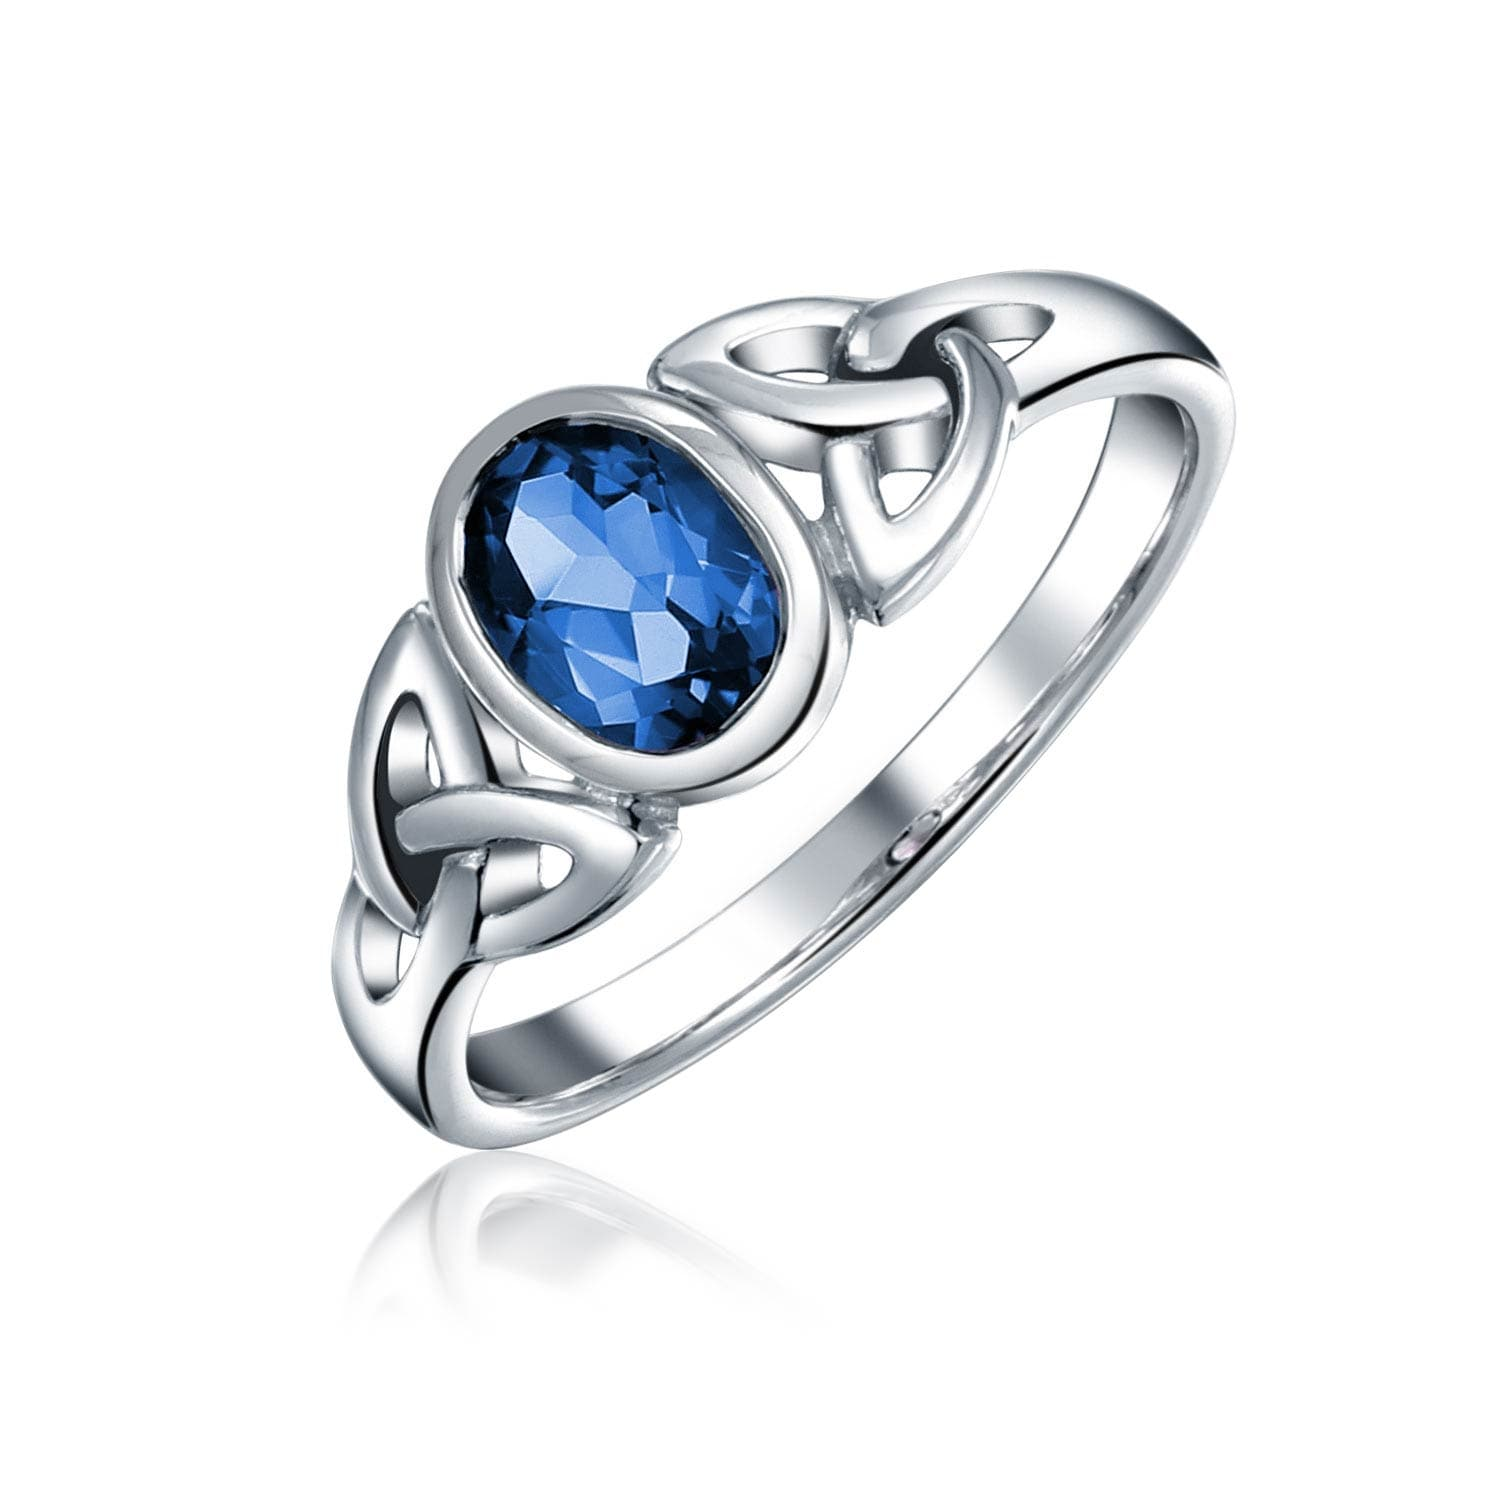 a4e53fd097222 Triquetra Celtic Friendship Promise Ring For Women Oval Shape Bezel Blue  Imitation Sapphire Glass .925 Sterling Silver